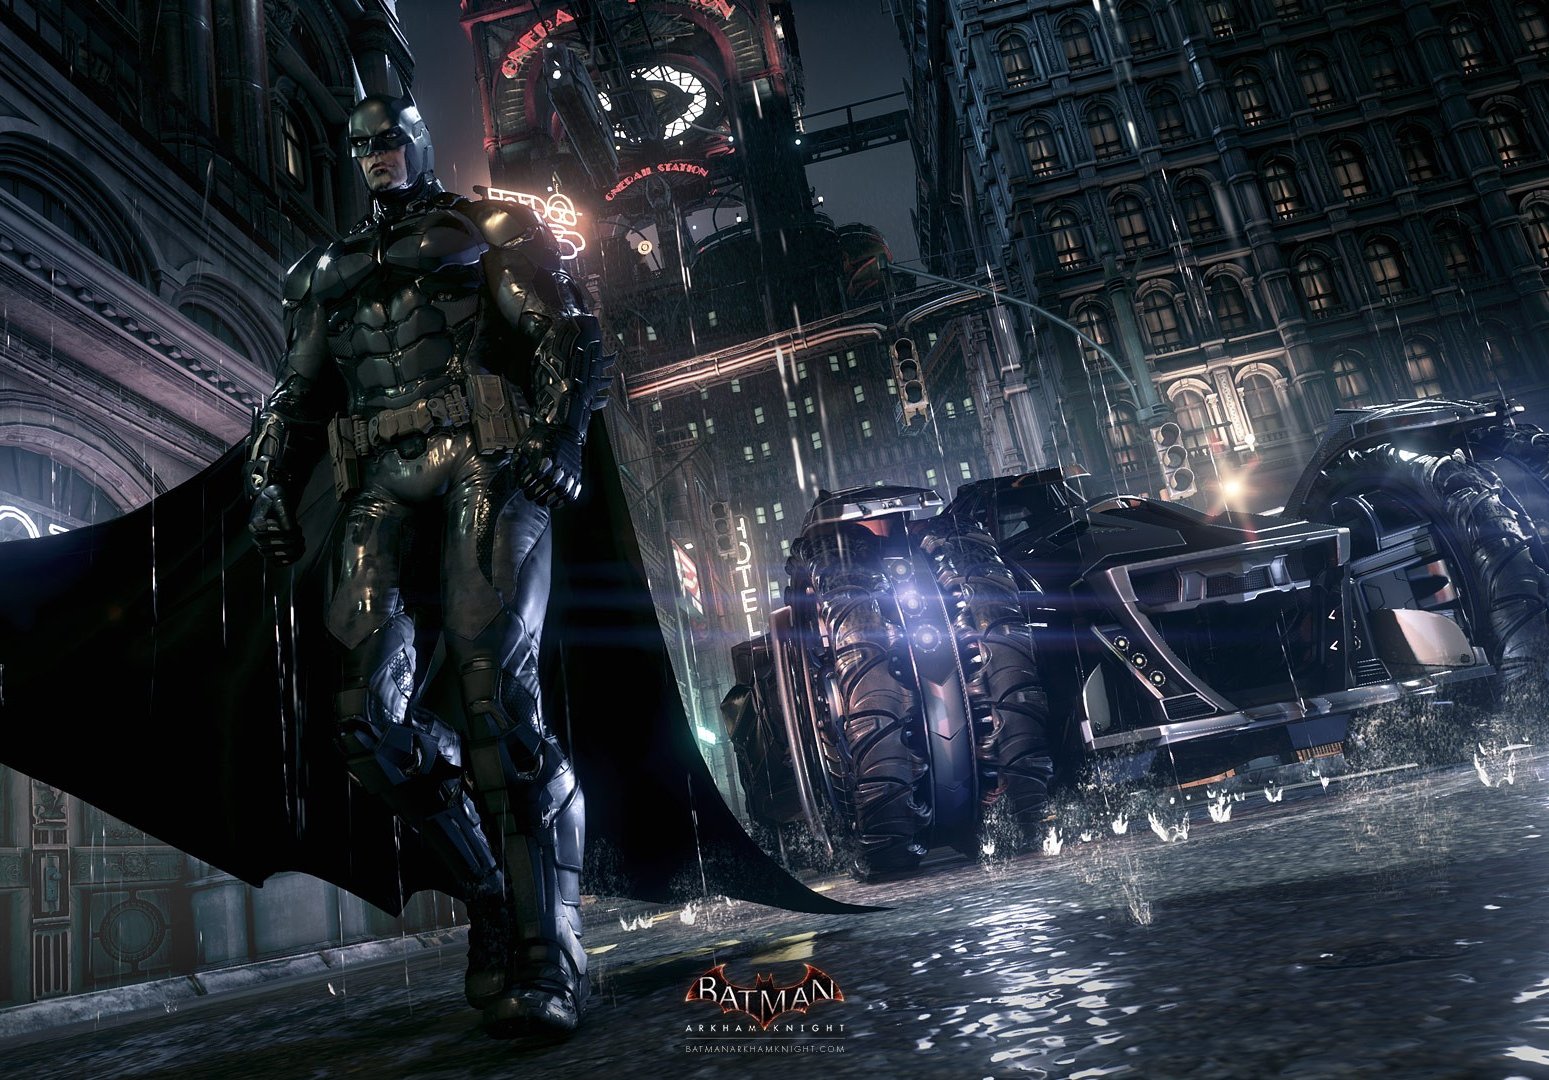 Batman: Arkham Knight - New Trailers & Images